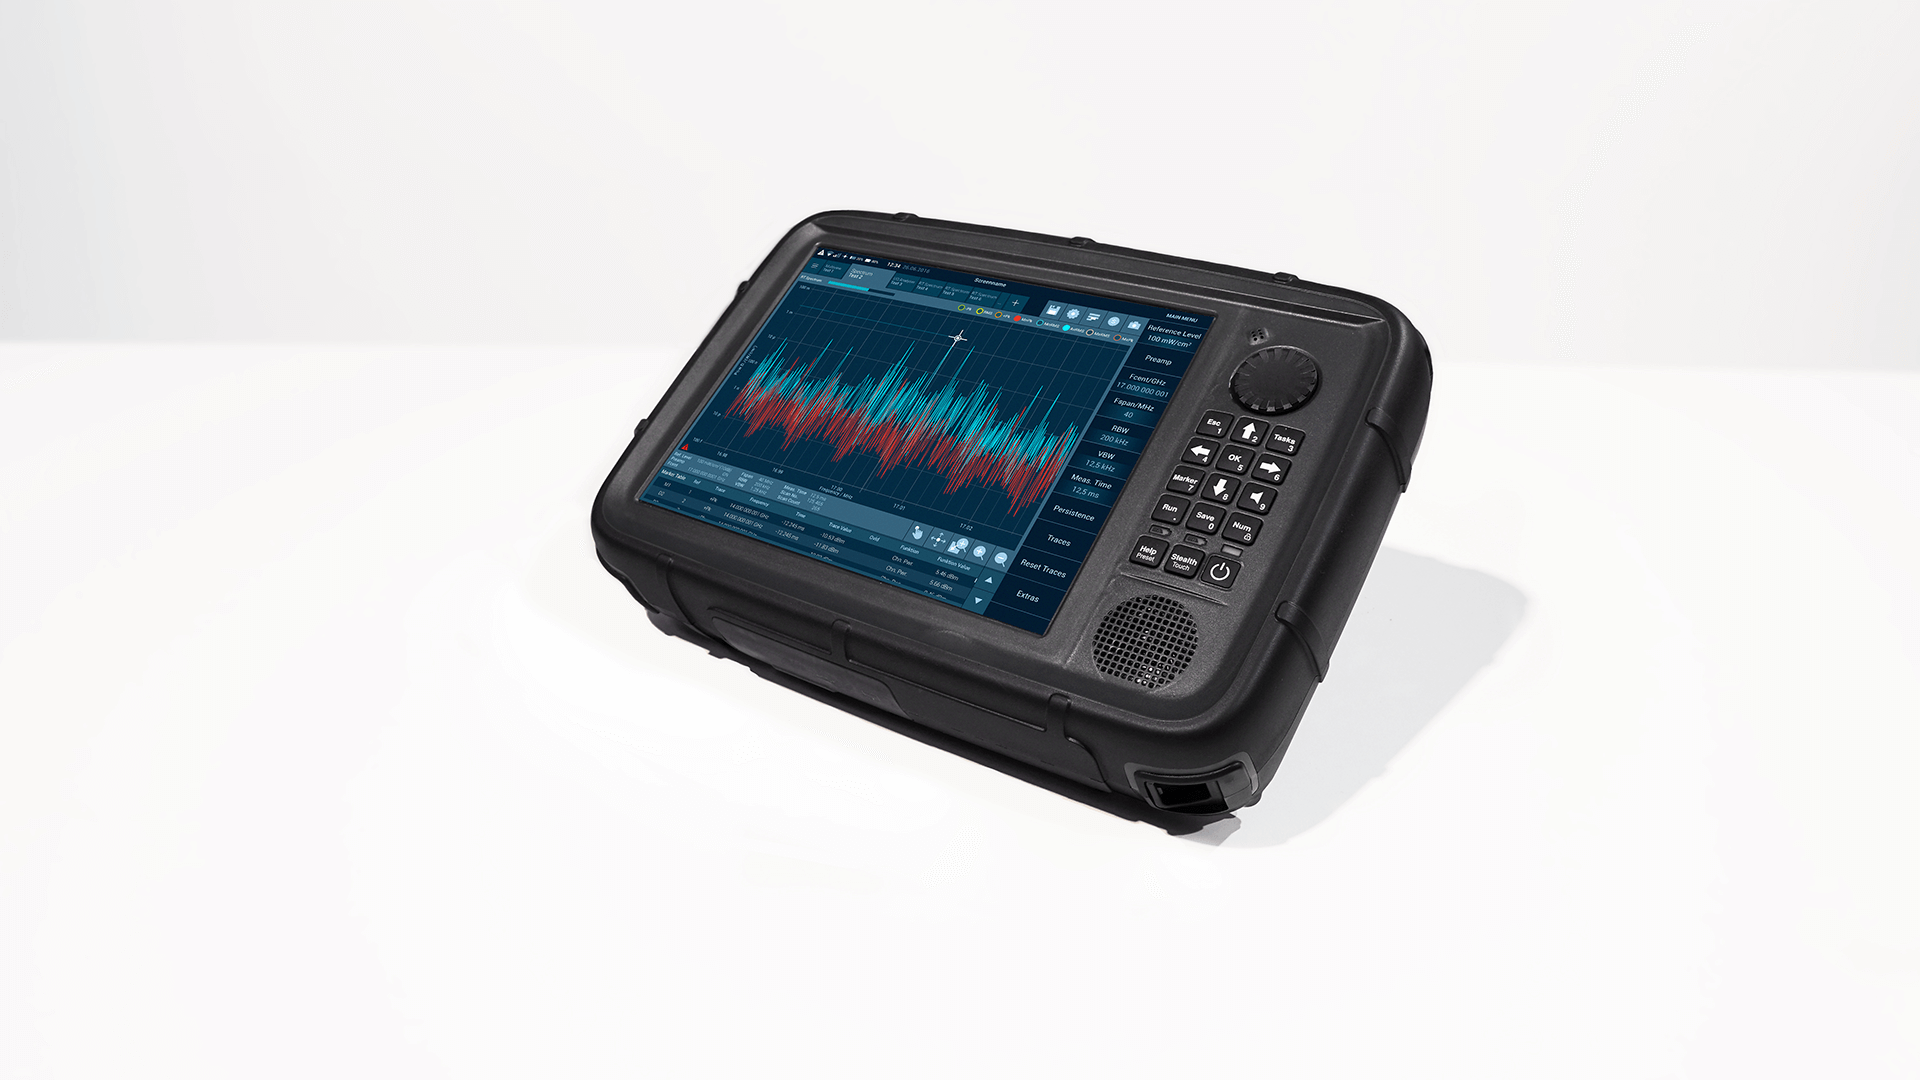 The black radiation measuring device SignalShark from Narda with a blue user interface, photographed diagonally from the top right.